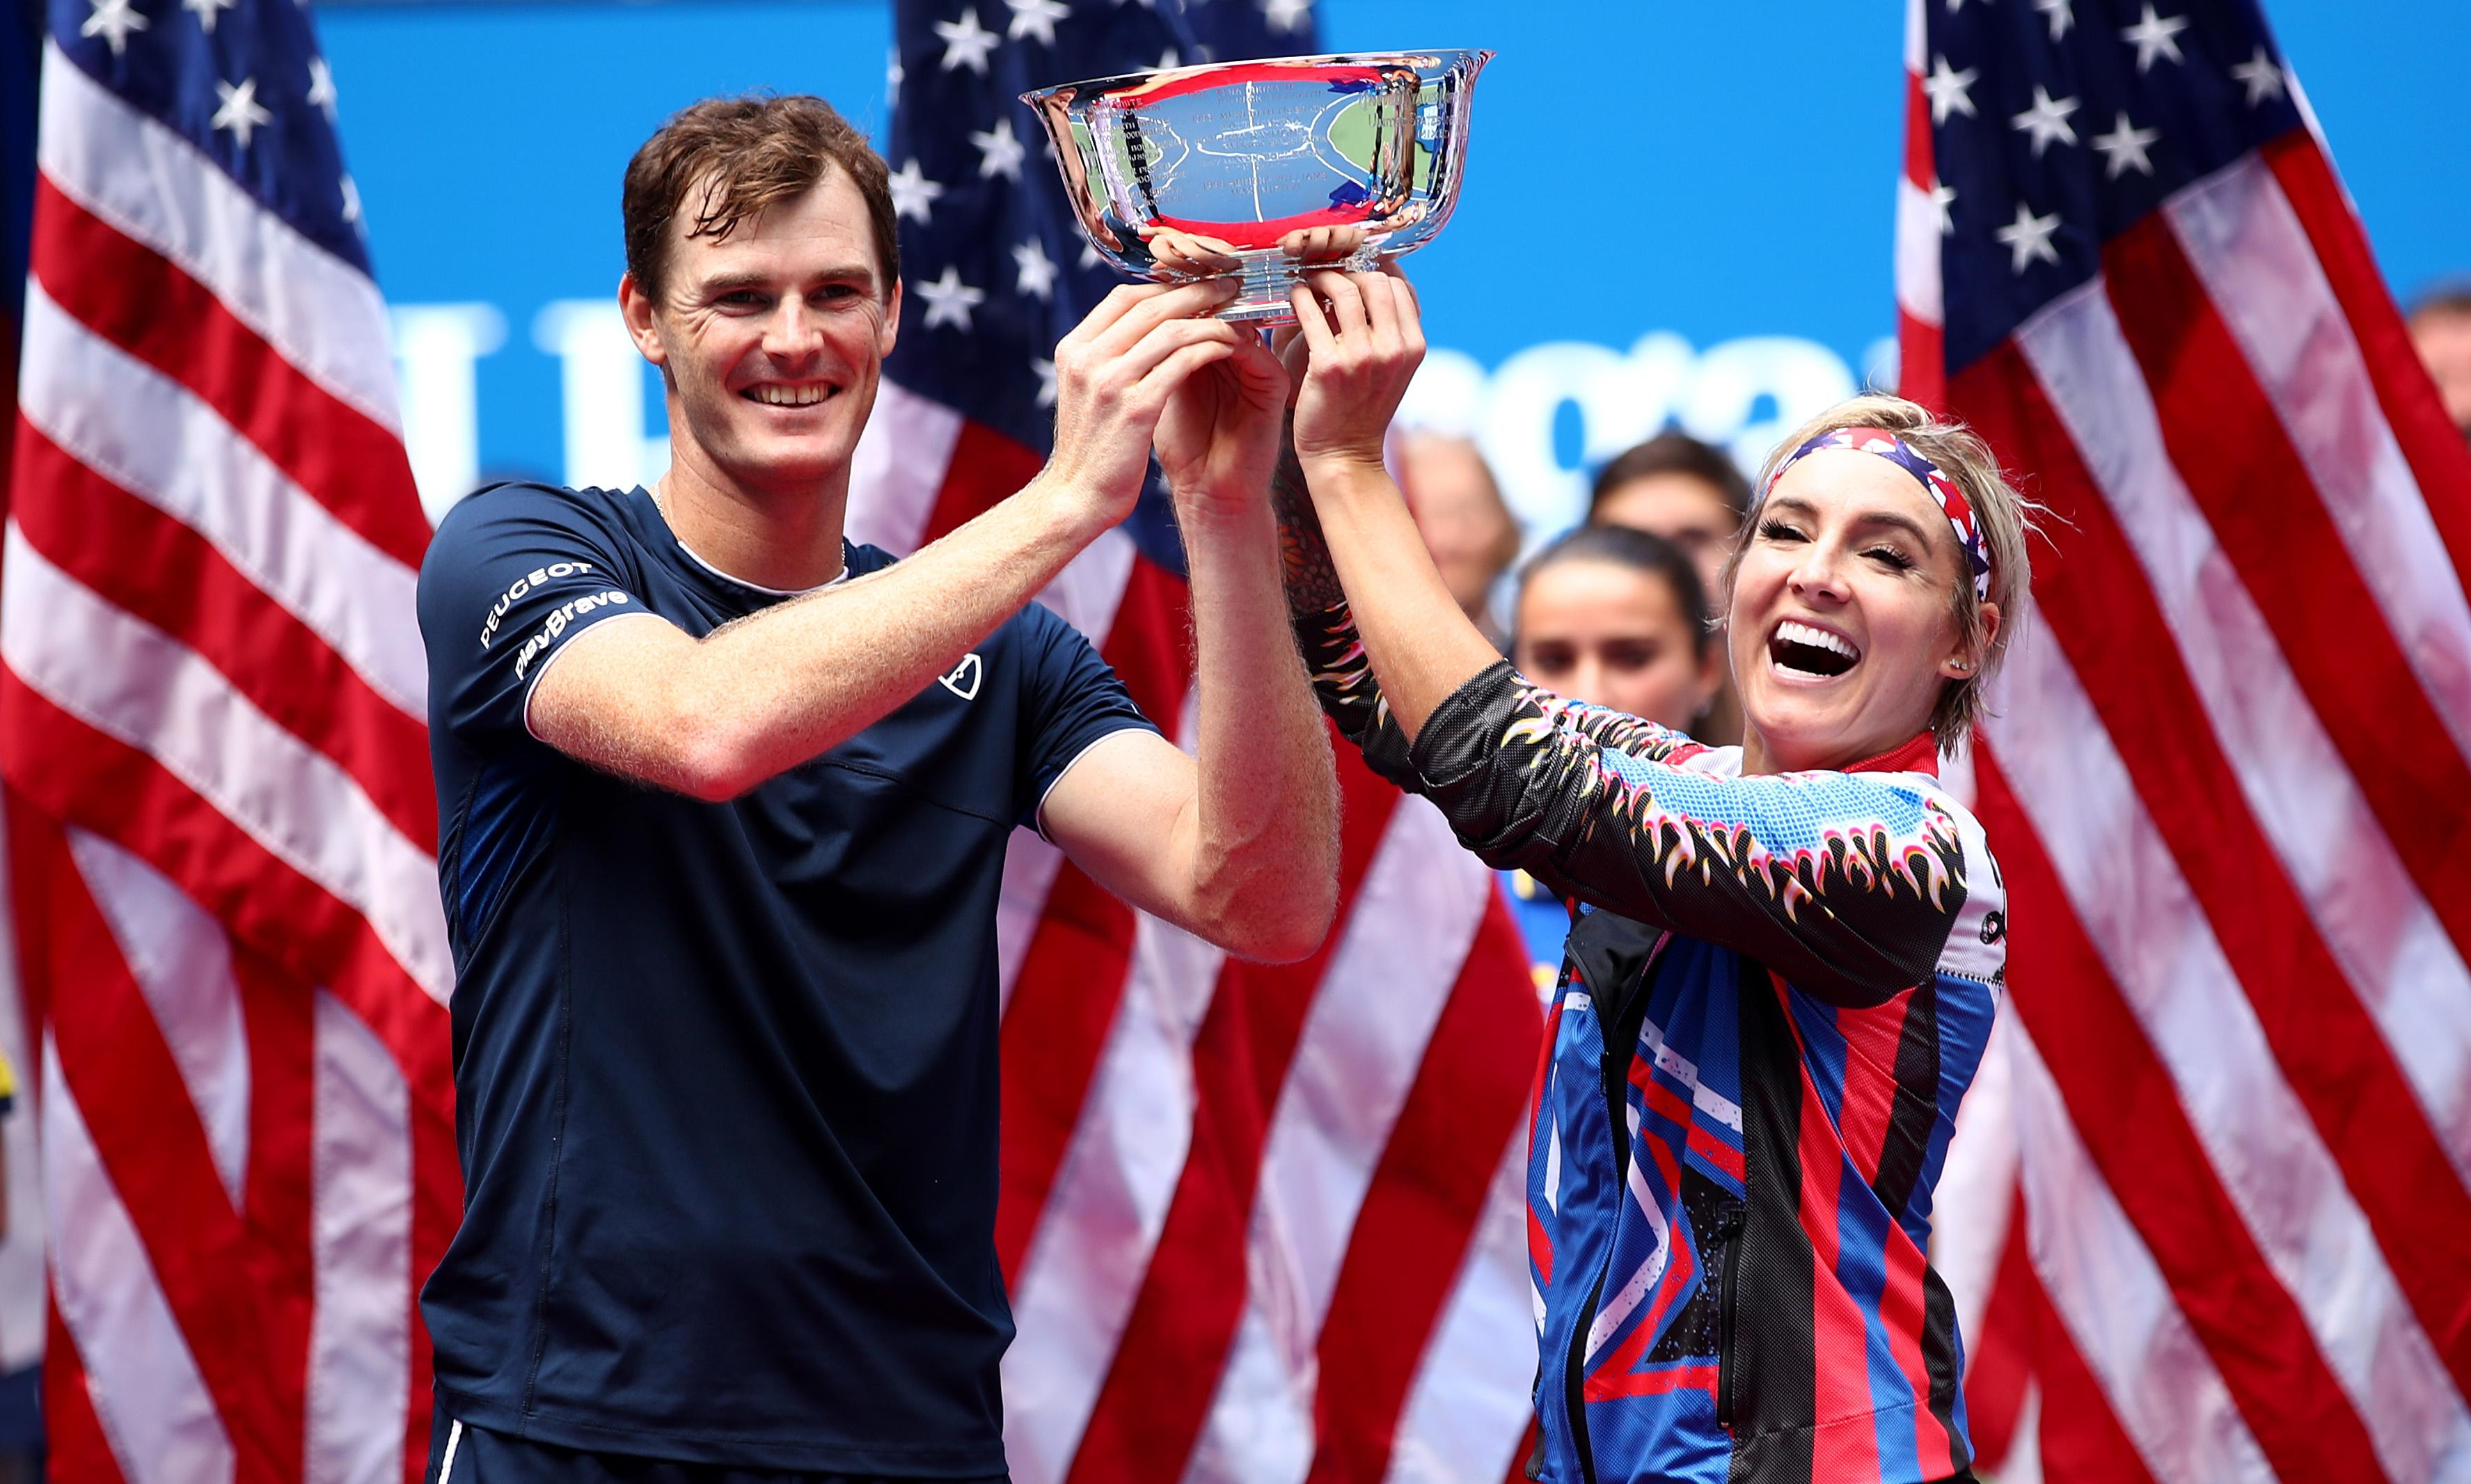 Jamie Murray and Mattek-Sands team up for Scot's fourth US Open doubles title